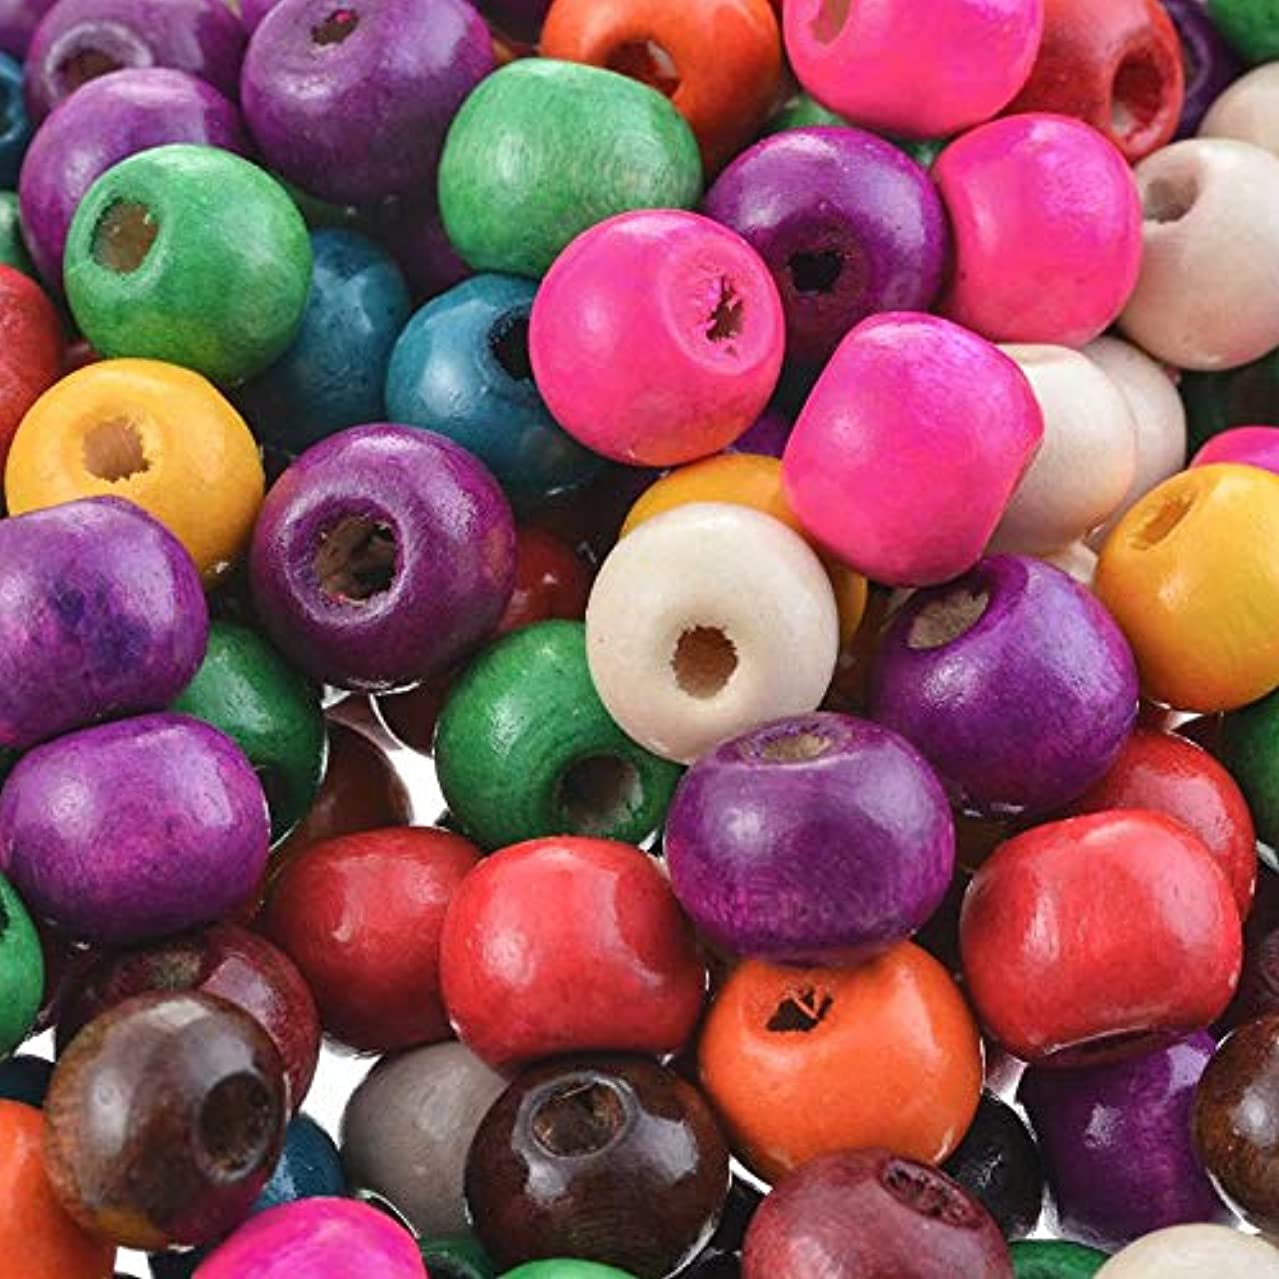 Souarts 6mm 8mm Pack of 500pcs Ball Shape Wood Loose Beads (Colorful, 8mm)